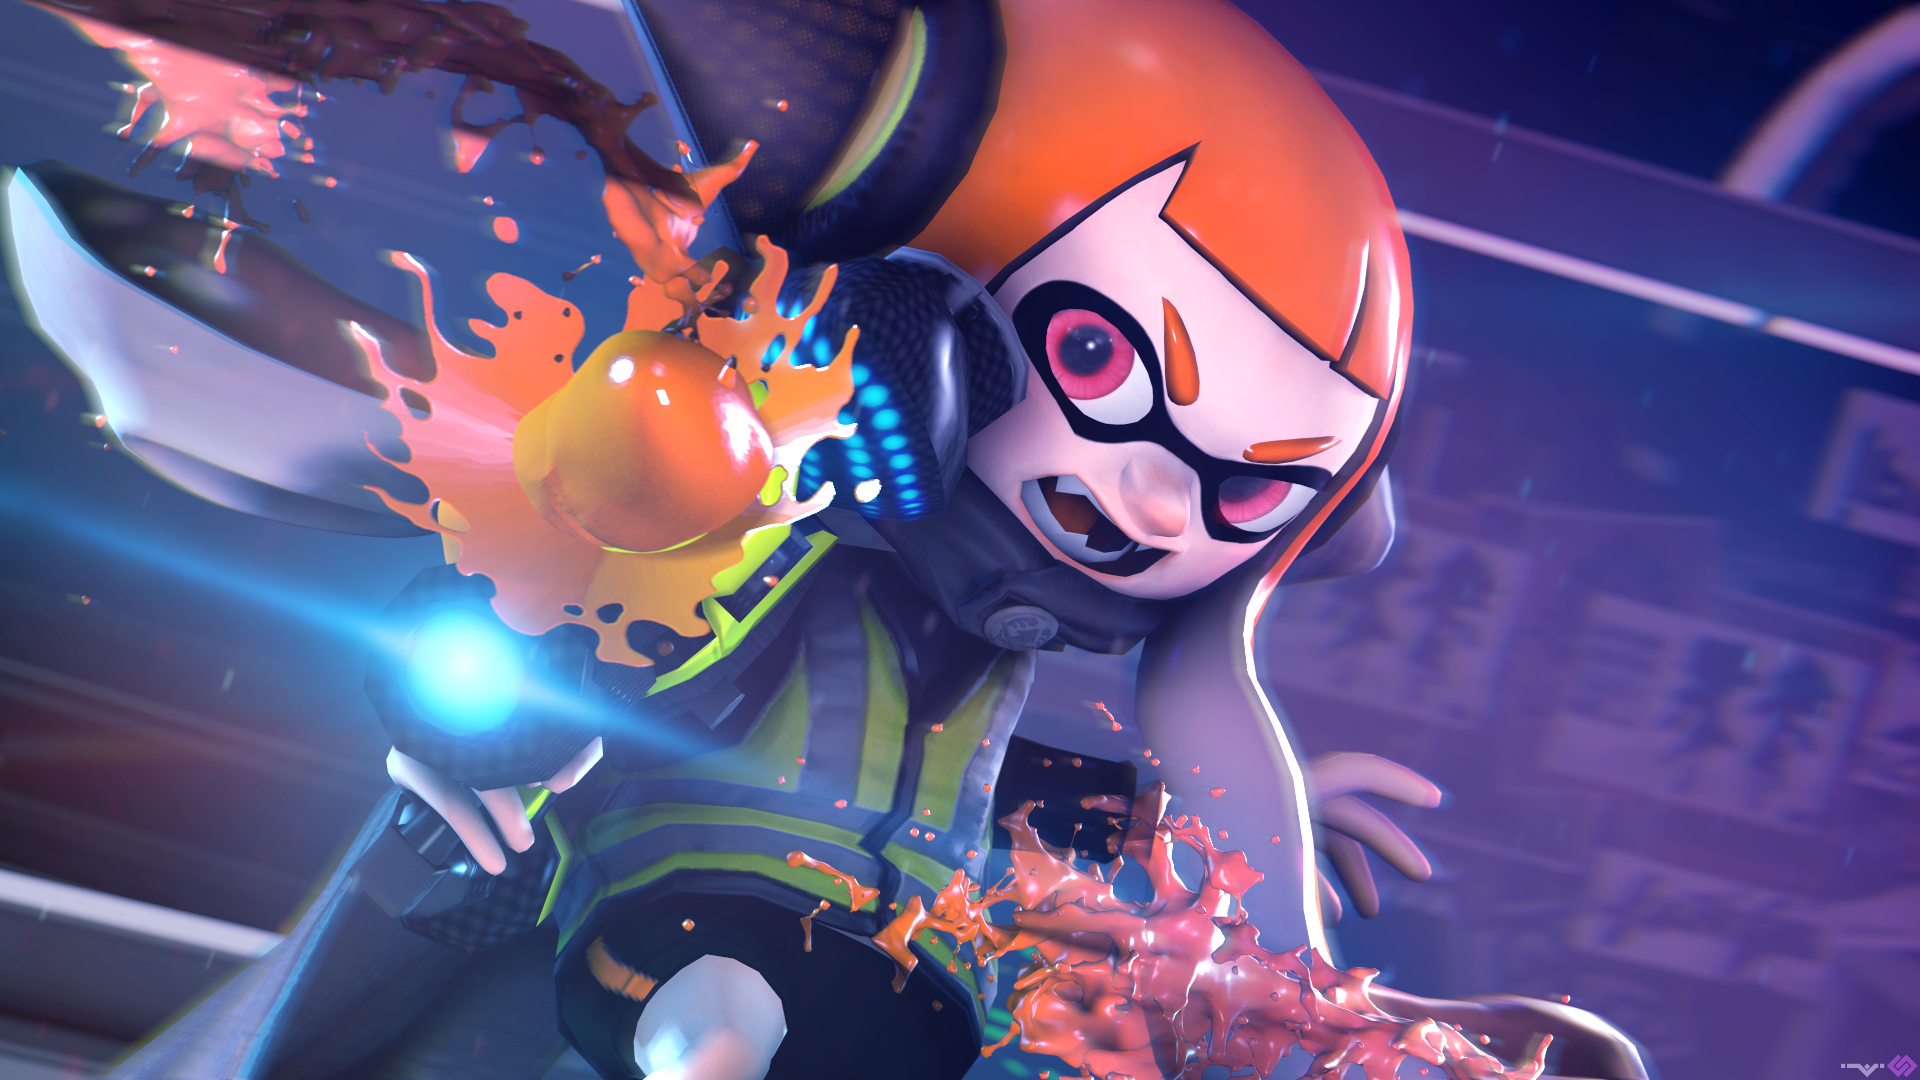 Splatoon 2 Octo Expansion Wallpaper Posted By Ryan Thompson